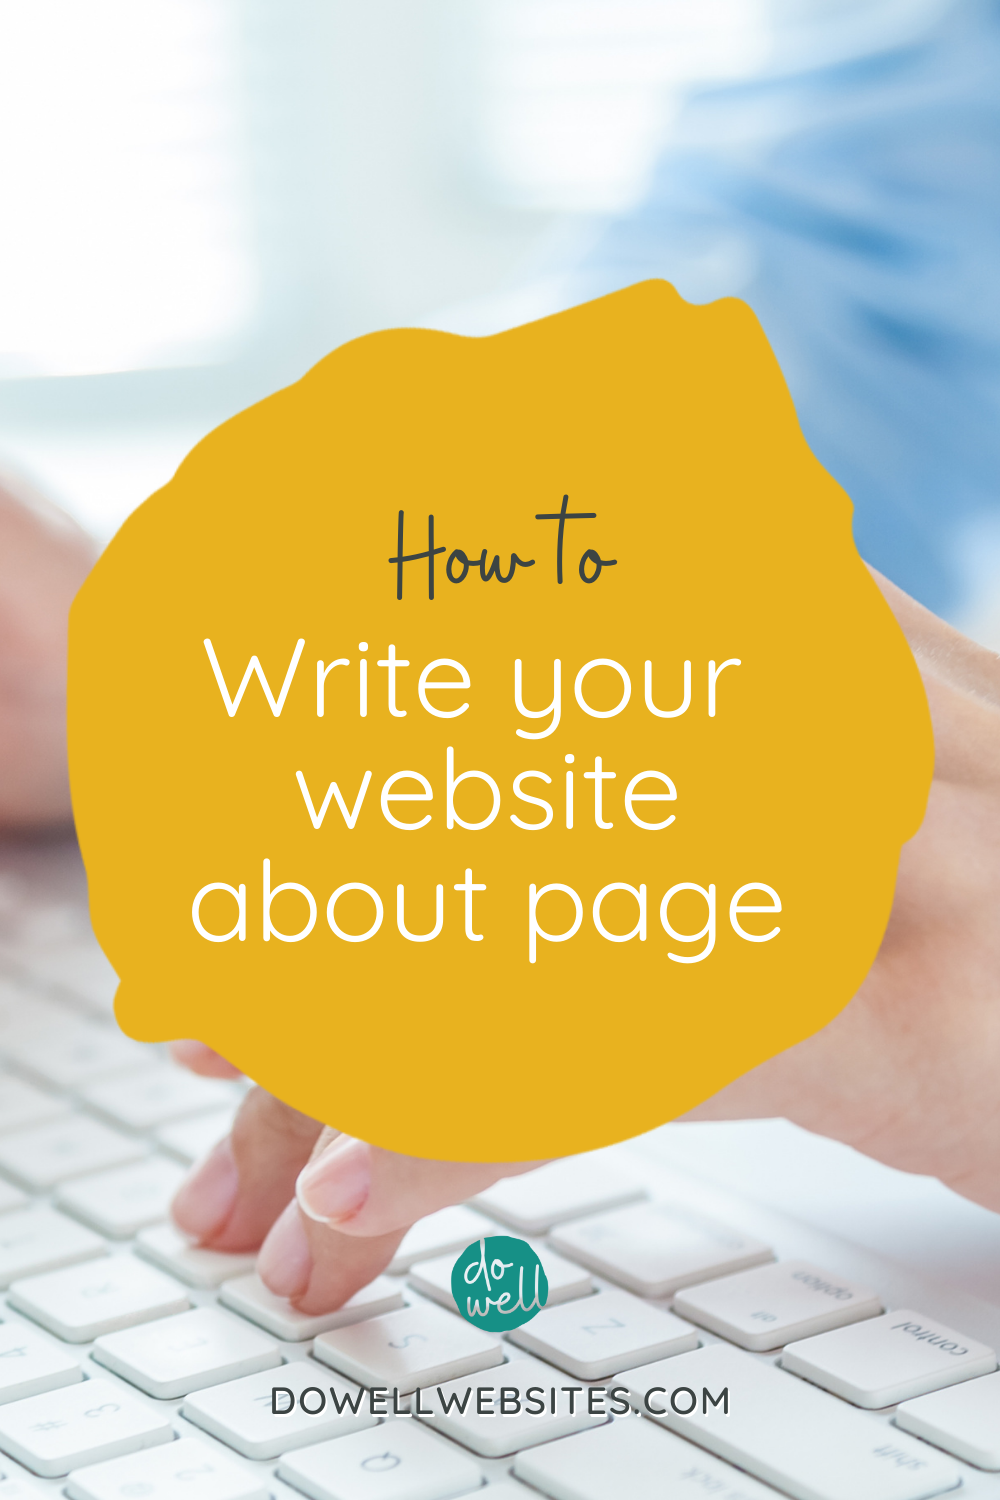 Although your website about page is about you, it needs to be written FOR them. Let's go over 6 tips to write it in a way that connects with your audience.